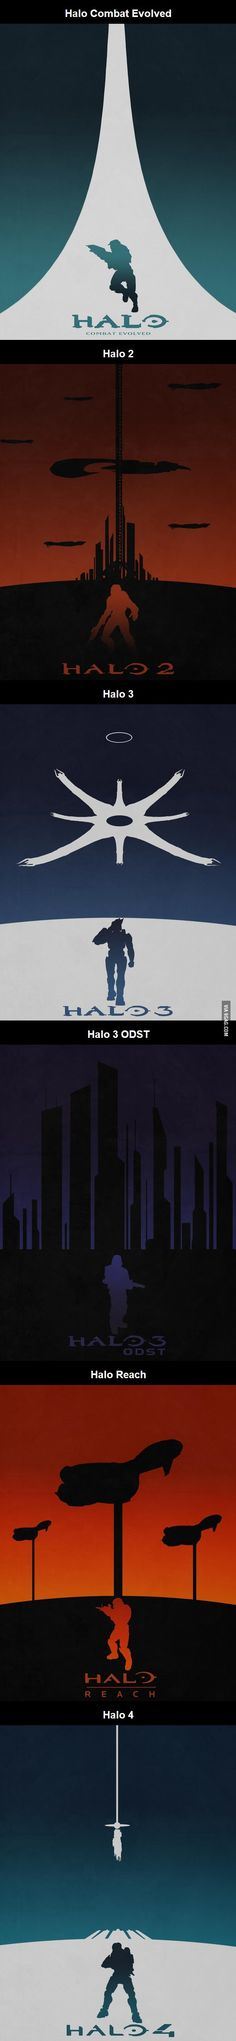 Series of Halo Minimalist-style Posters